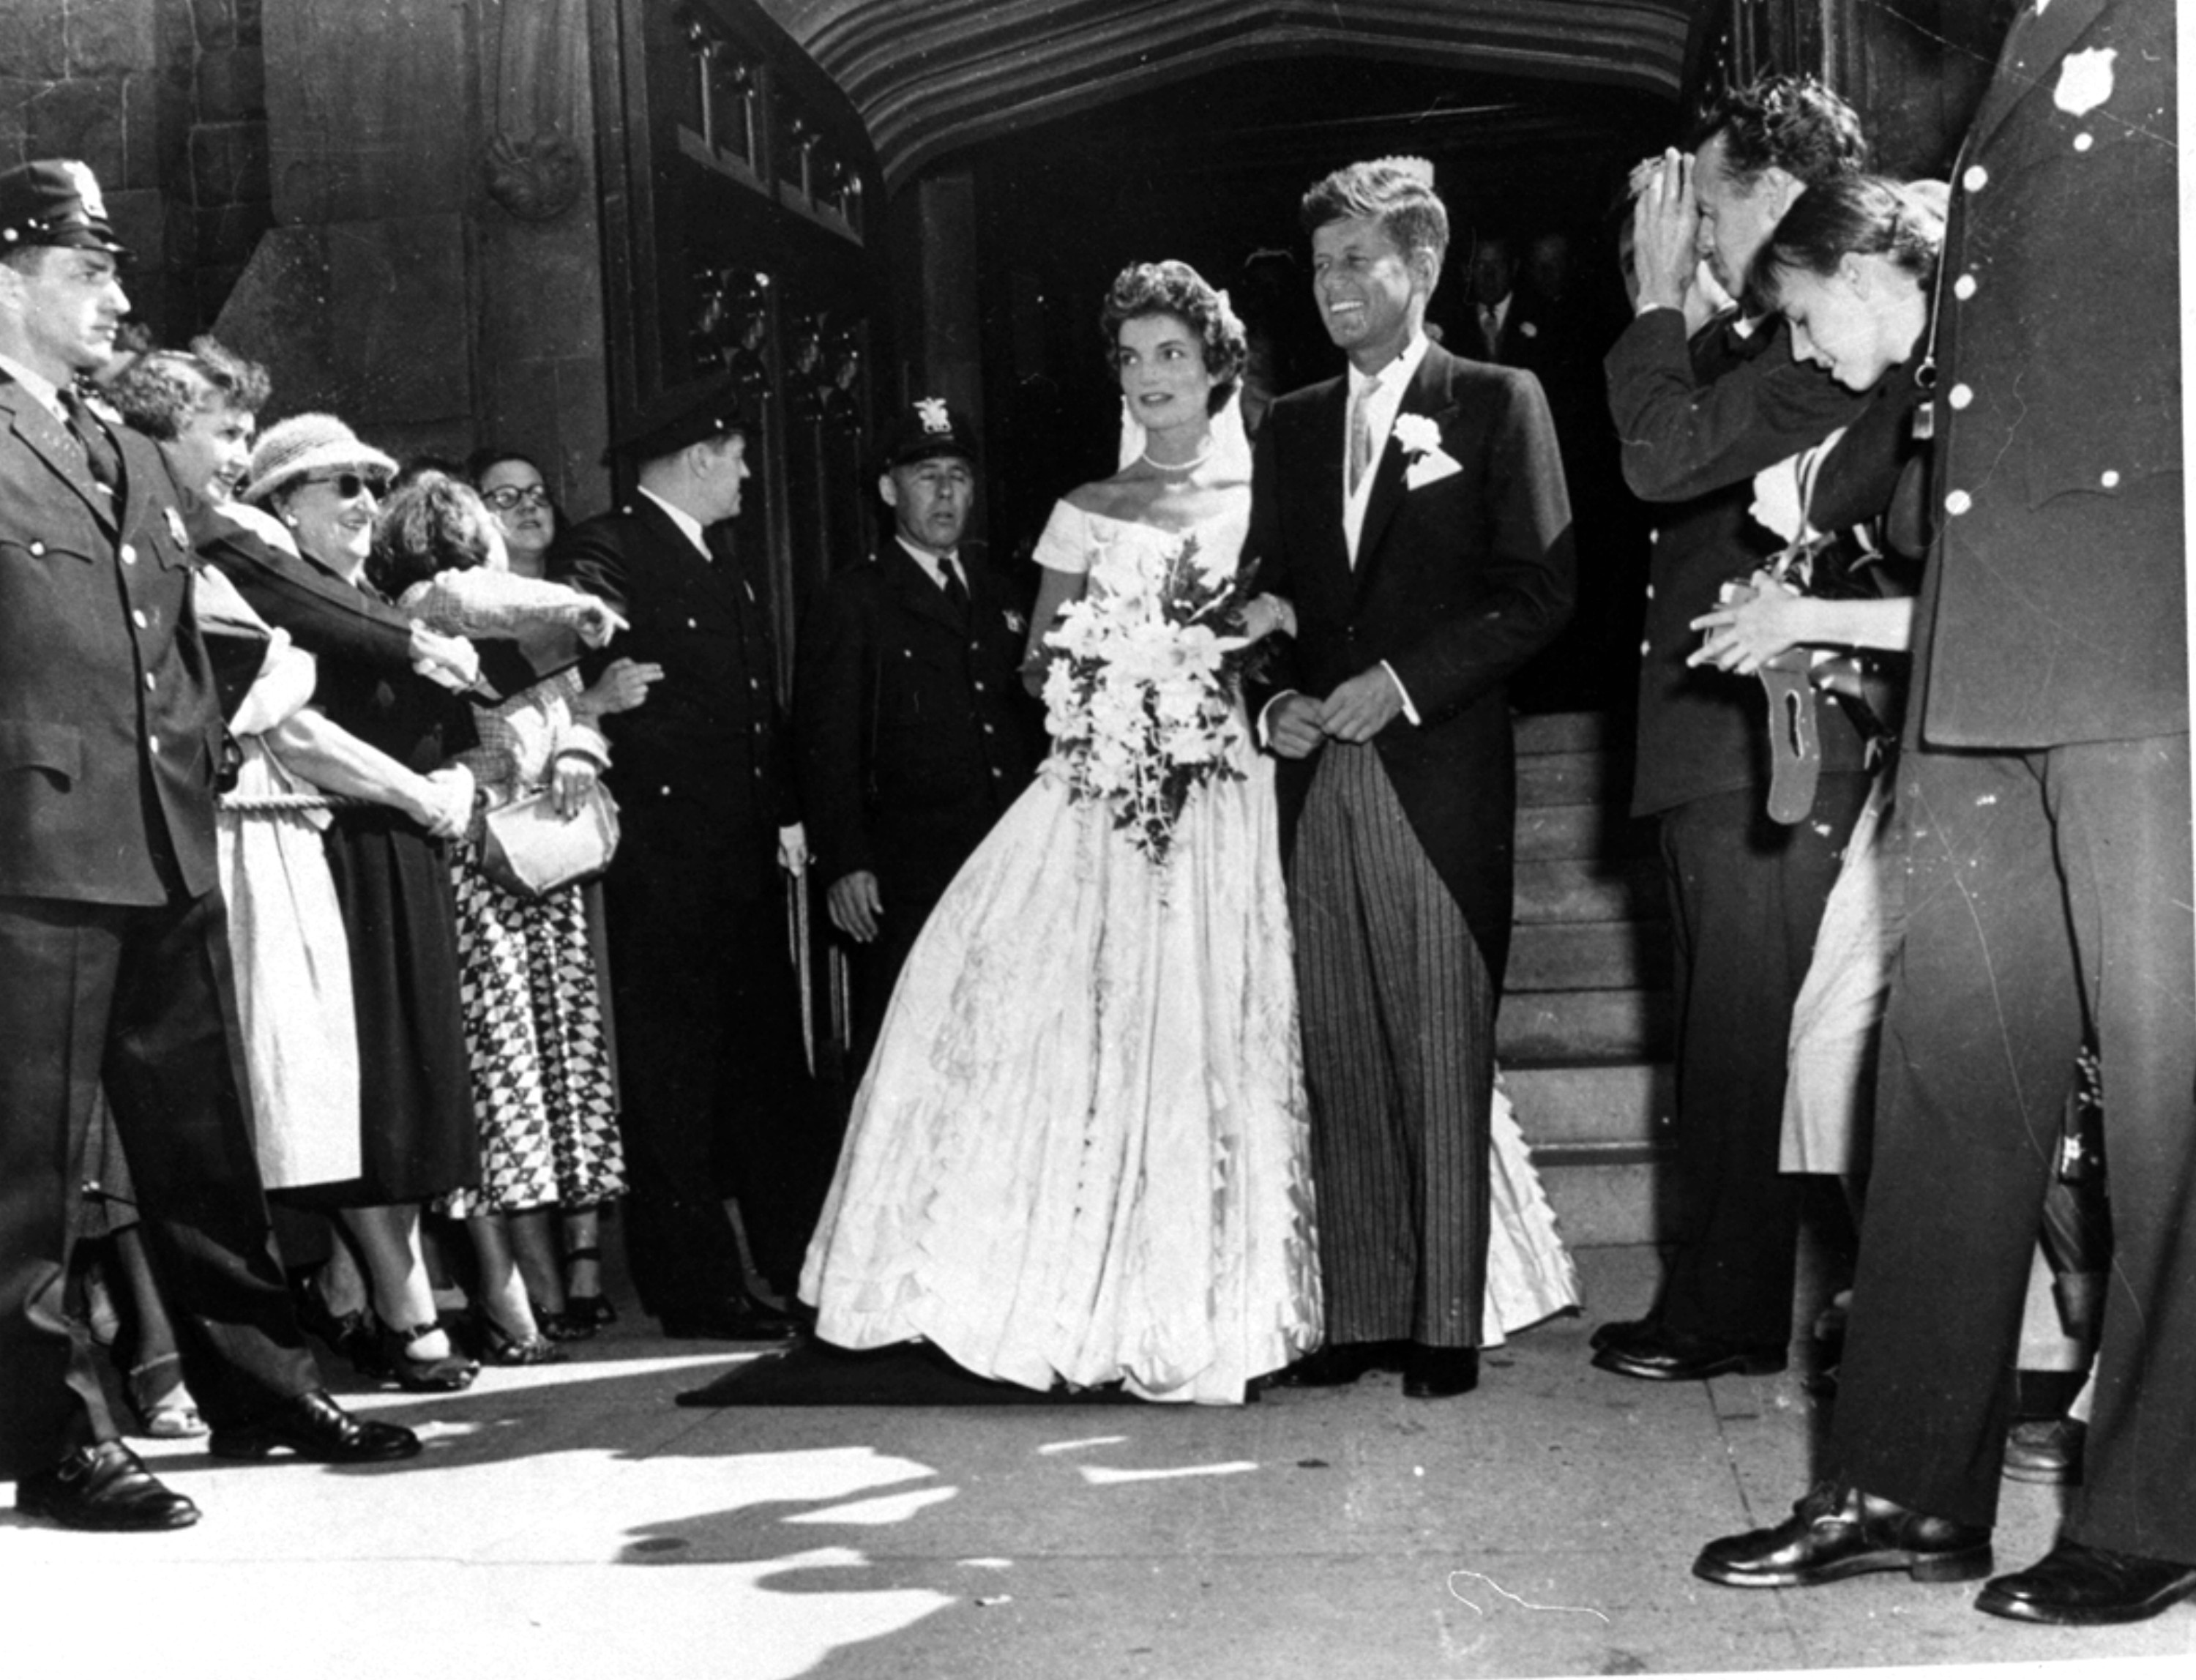 Archival and breaking-news images from AP are part of its new distribution agreement with Shutterstock Editorial. Above, Sen. John F. Kennedy, D-Mass., is shown with his bride, the former Jacqueline Bouvier, leaving a Newport, Rhode Island church after their wedding on Sept. 12, 1953. (AP Photo) Below, New England Patriots quarterback Tom Brady, left, and Denver Broncos quarterback Peyton Manning speak following the AFC championship game Sunday, Jan. 24, 2016, in Denver. (AP Photo/David Zalubowski)